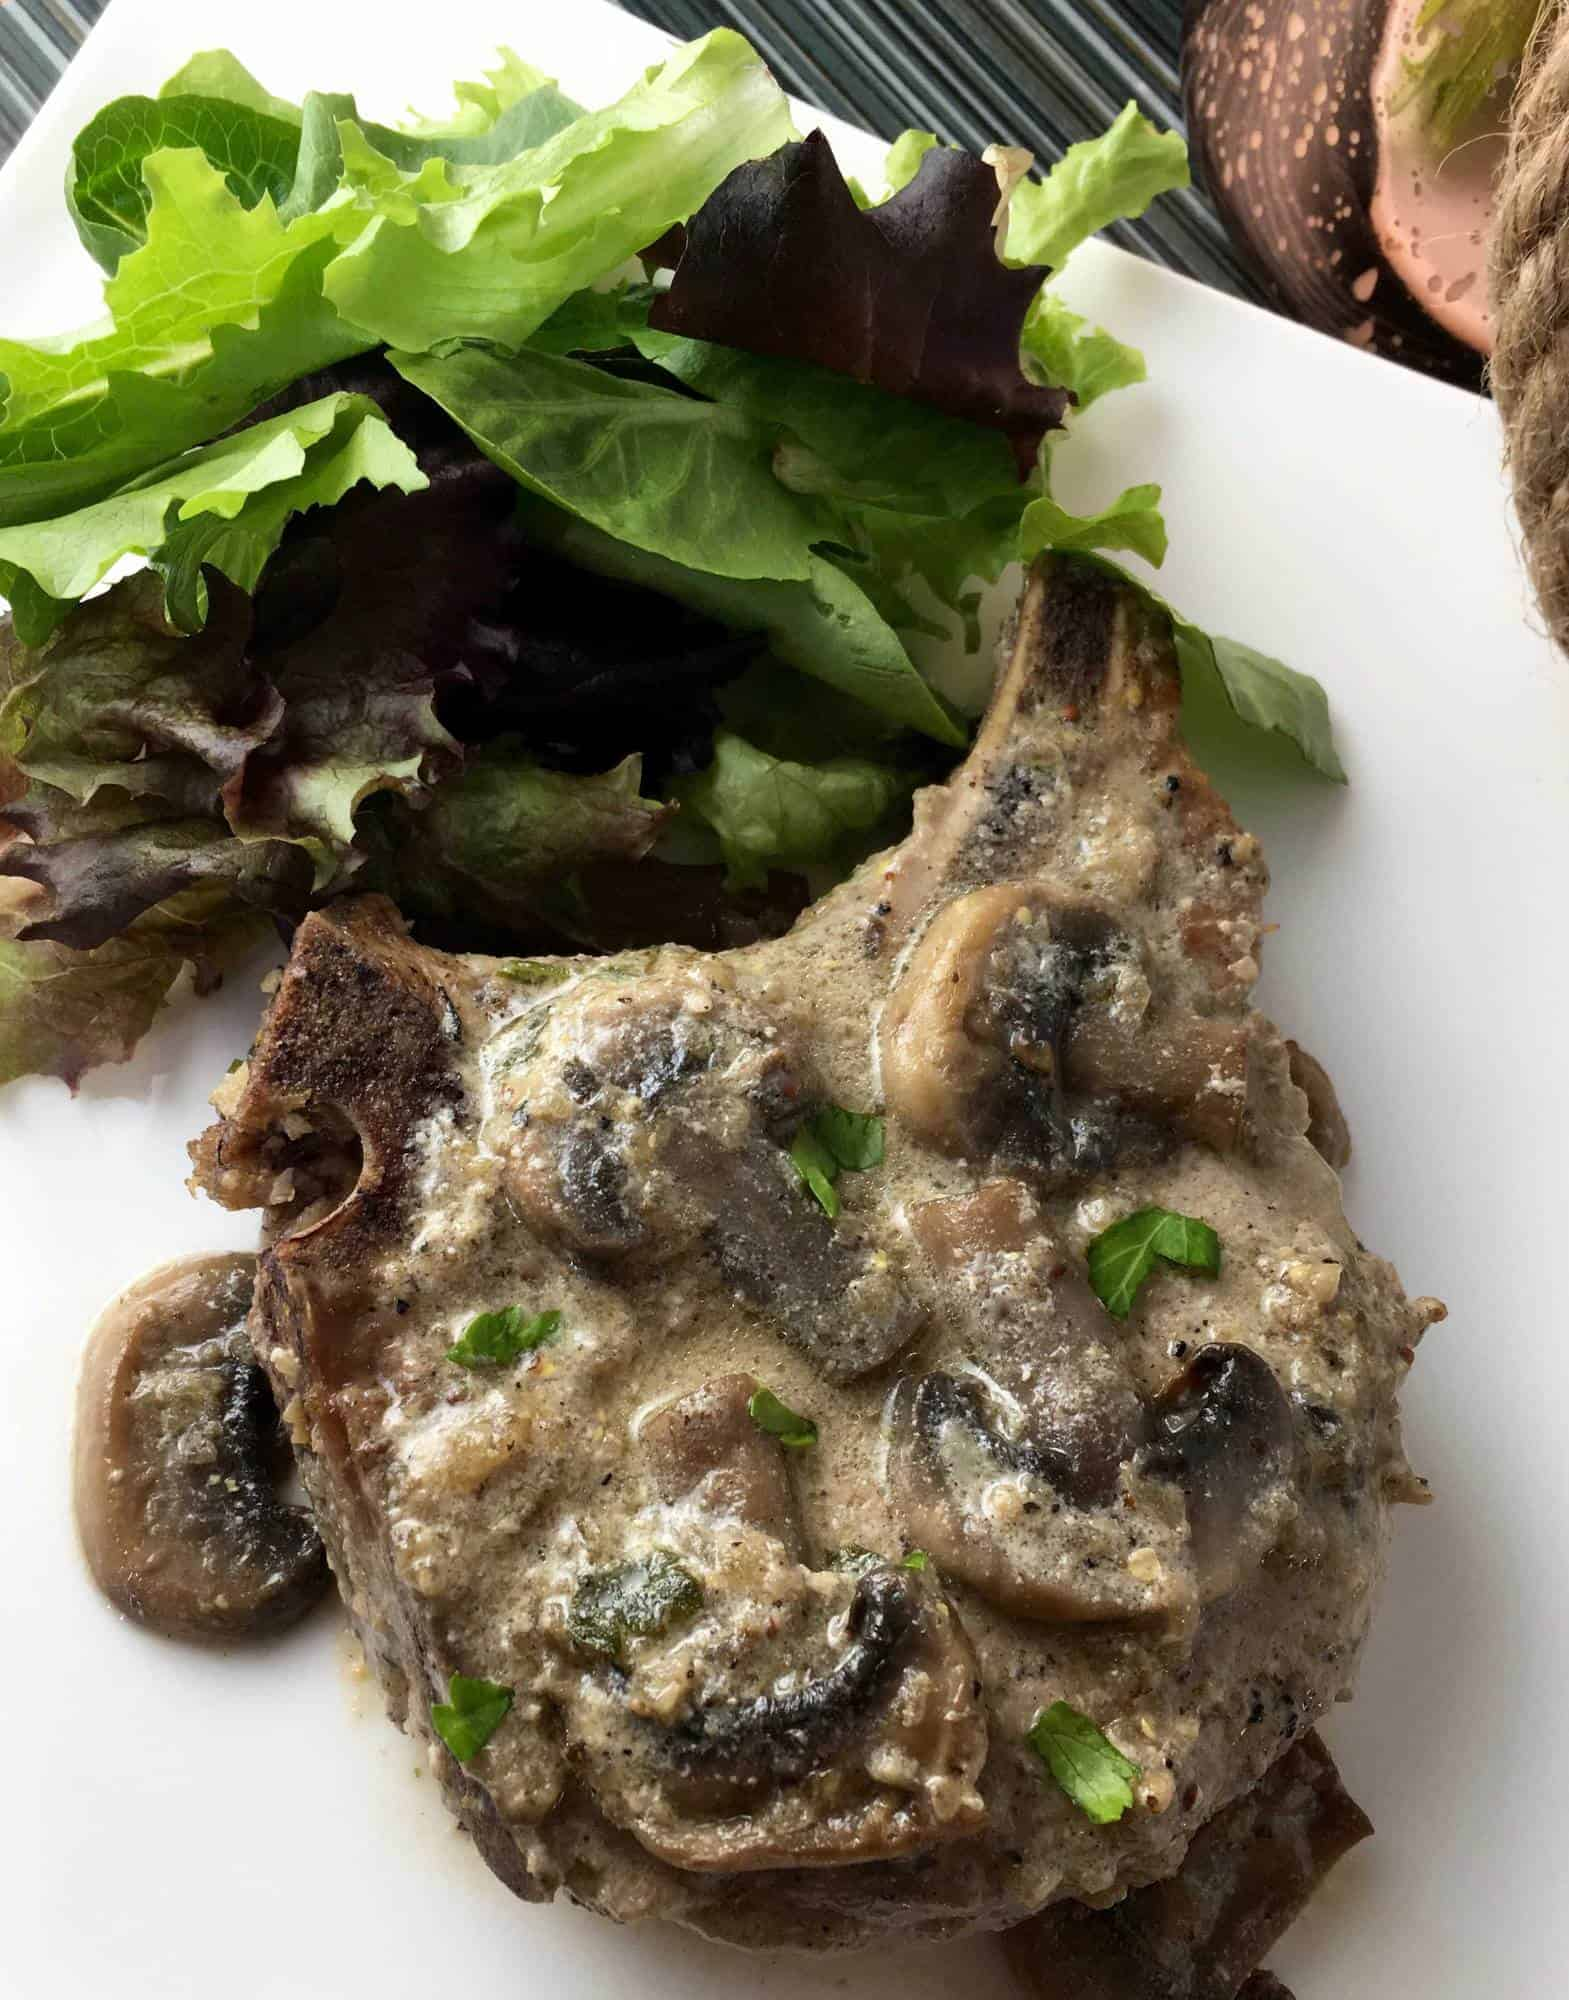 Bone-In Pork Chops with Creamy Mushroom Sauce